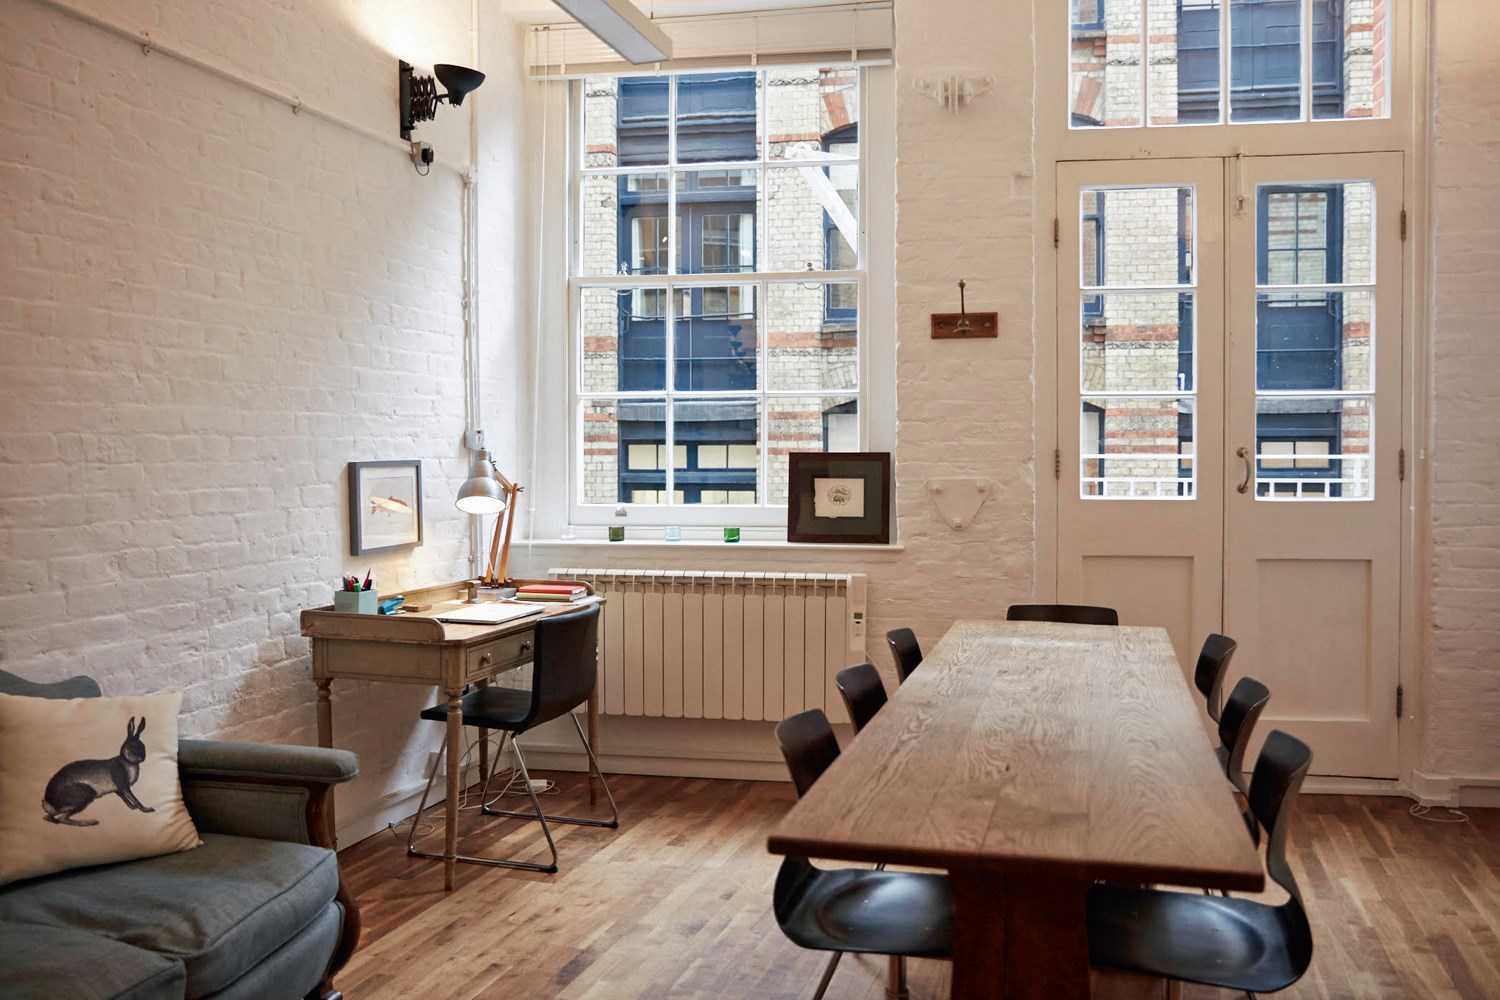 23 Charlotte Road EC2A 3PB Shoreditch Office Internal